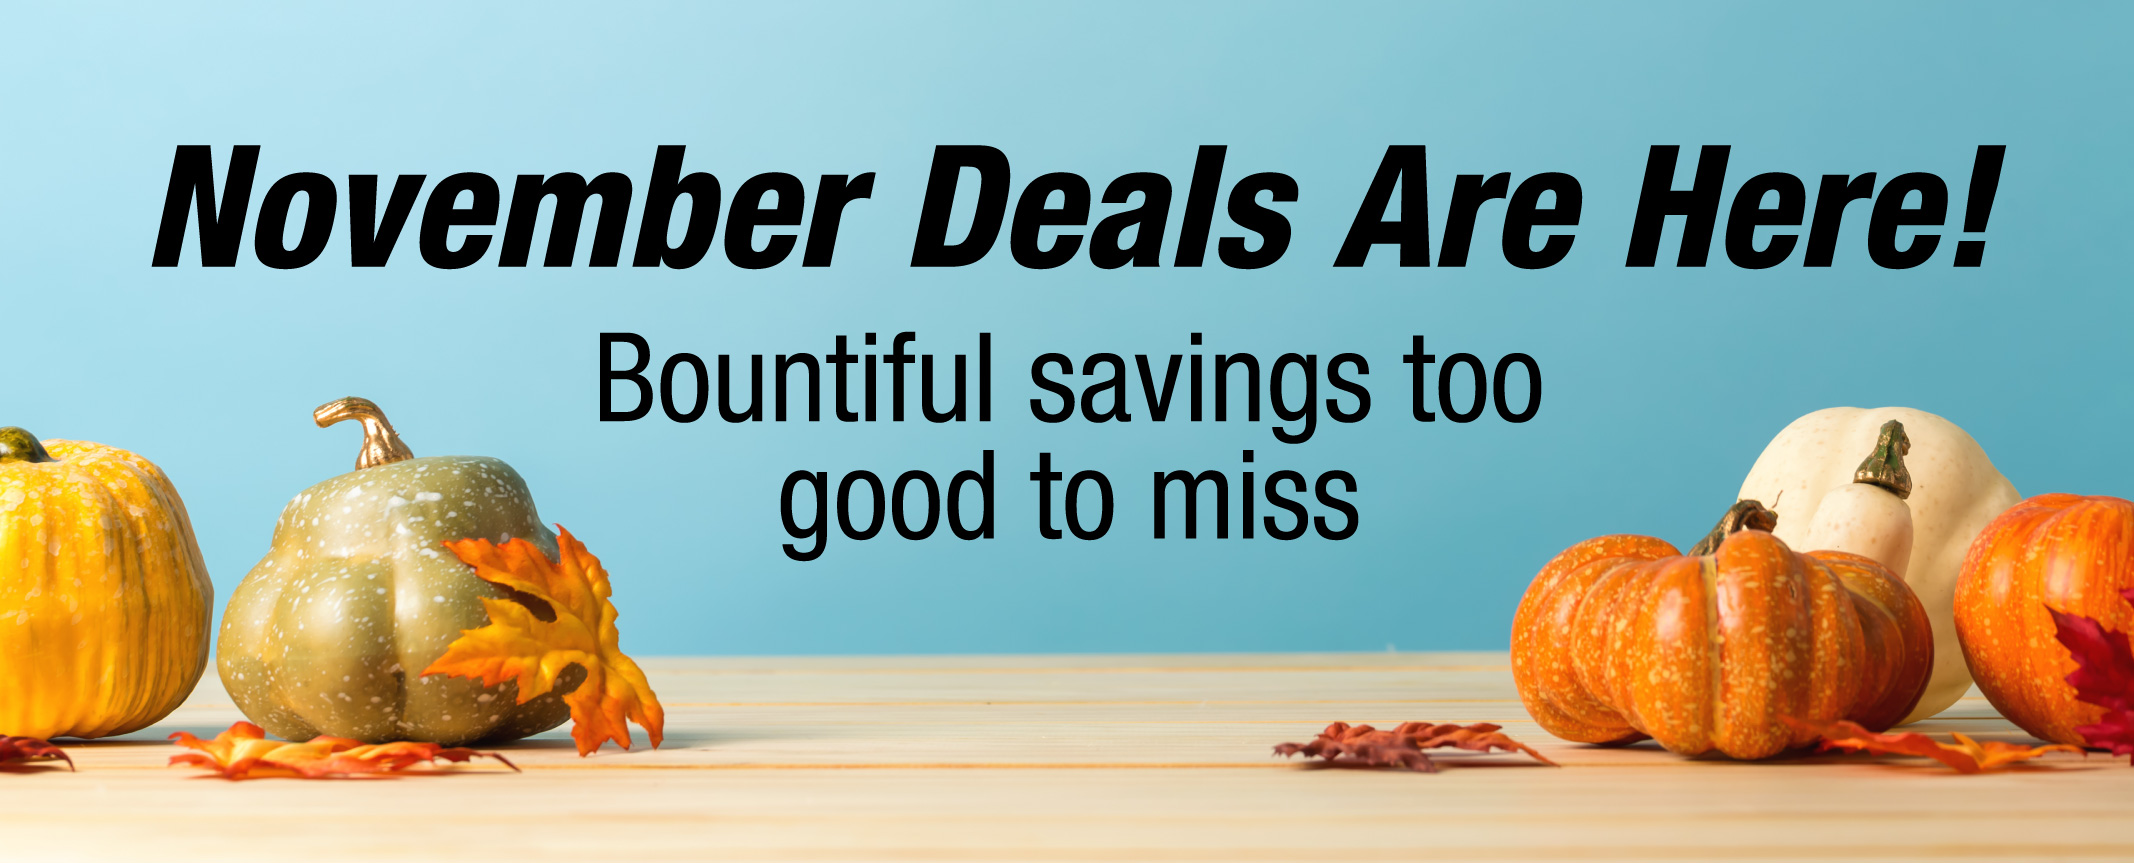 October Deals - Limited Time Offers